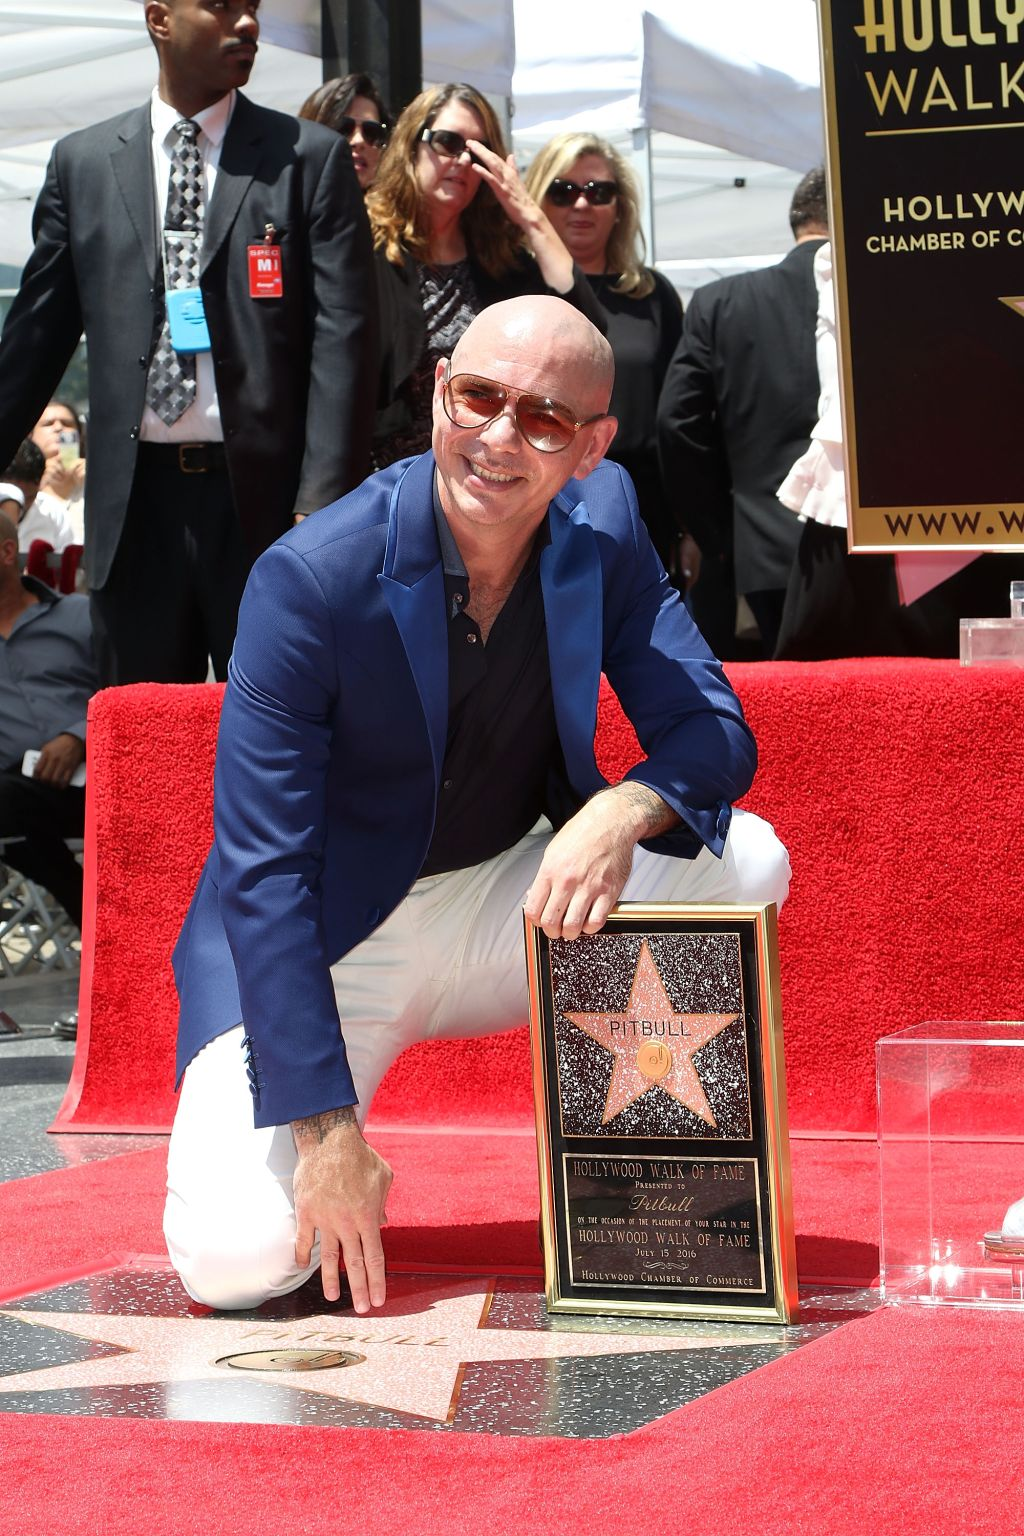 Pitbull Honored With Star On The Hollywood Walk Of Fame